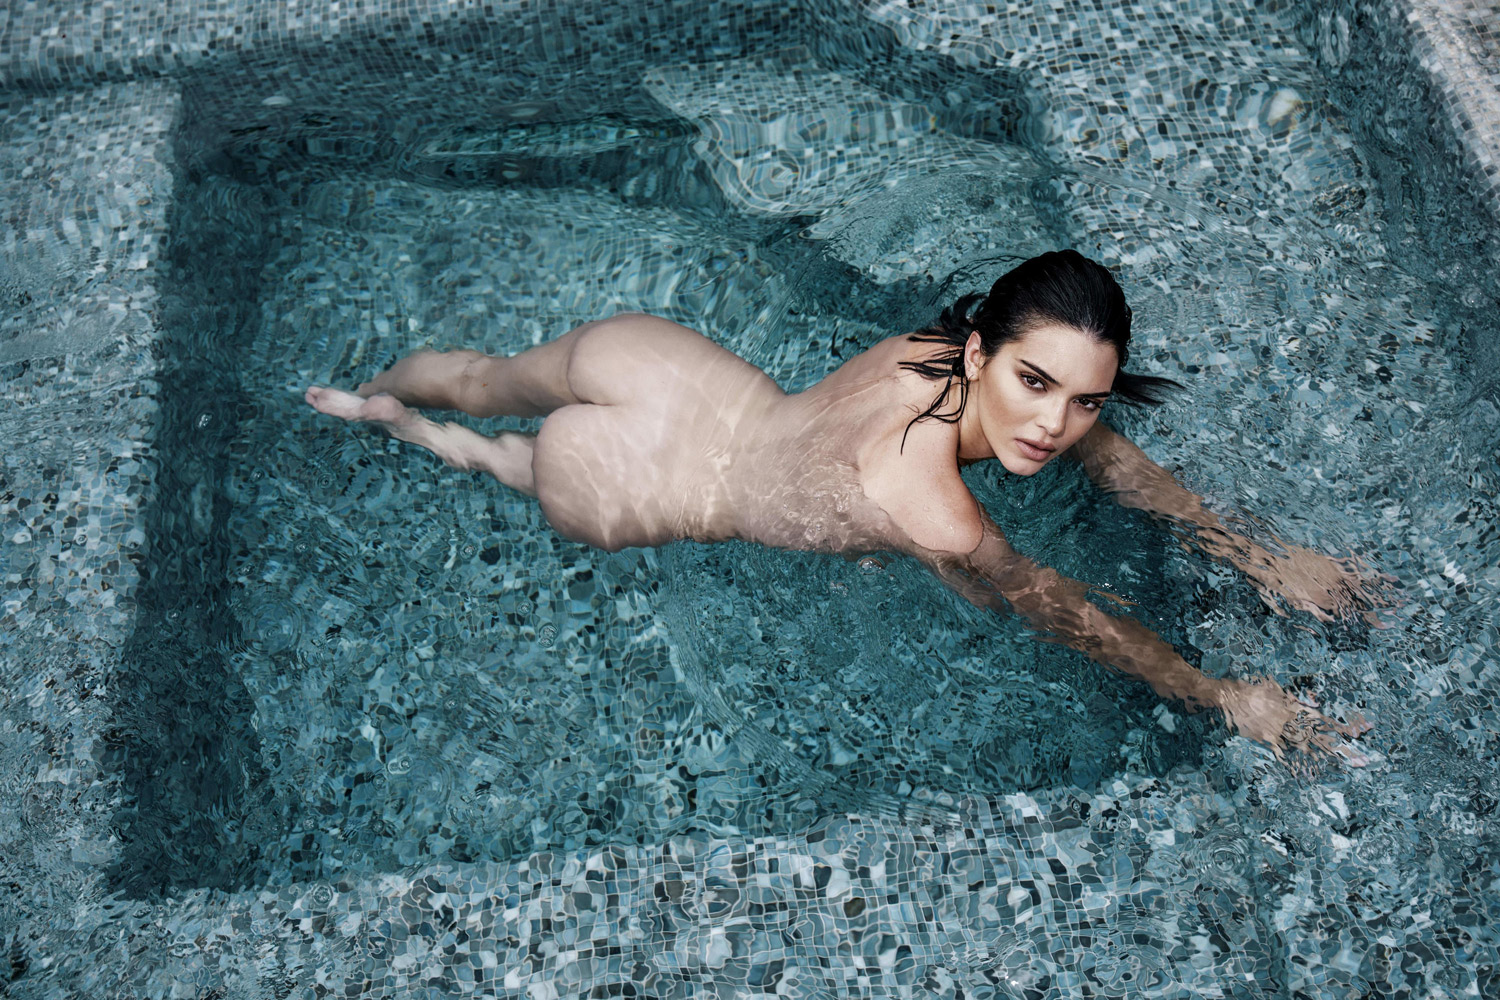 Kendall Jenner pool nude